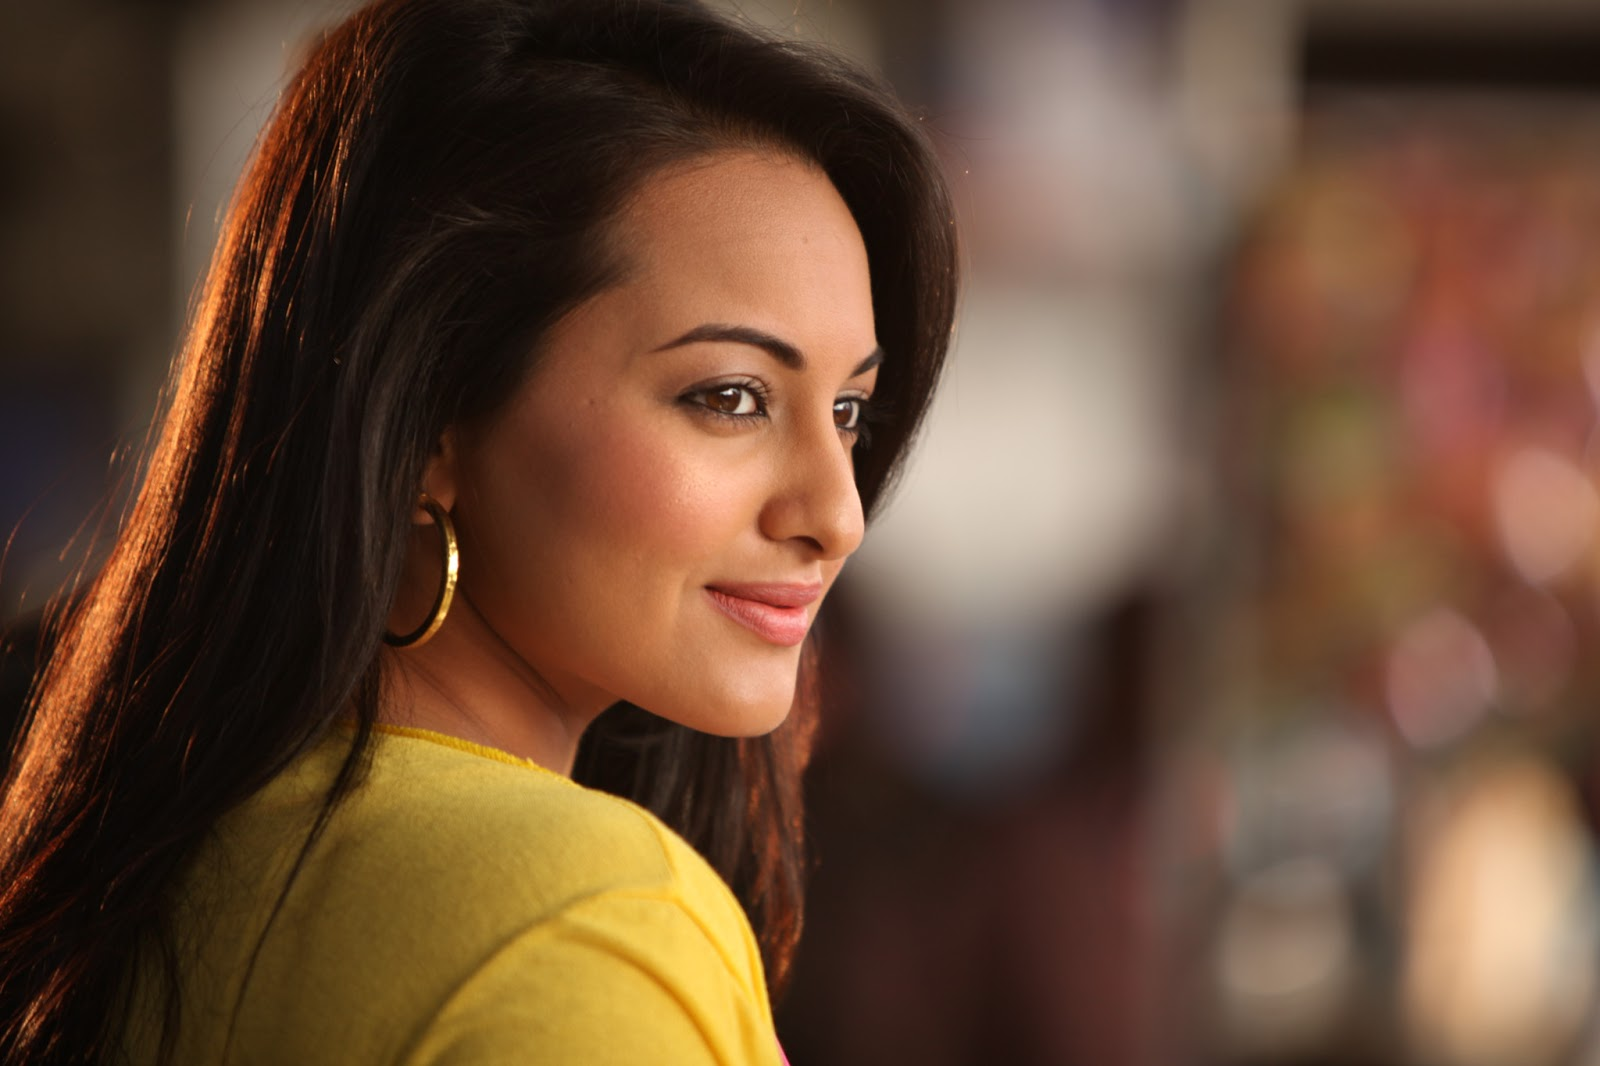 Sonakshi sinha hd wallpapers wallpaper202 - Desi actress wallpaper ...